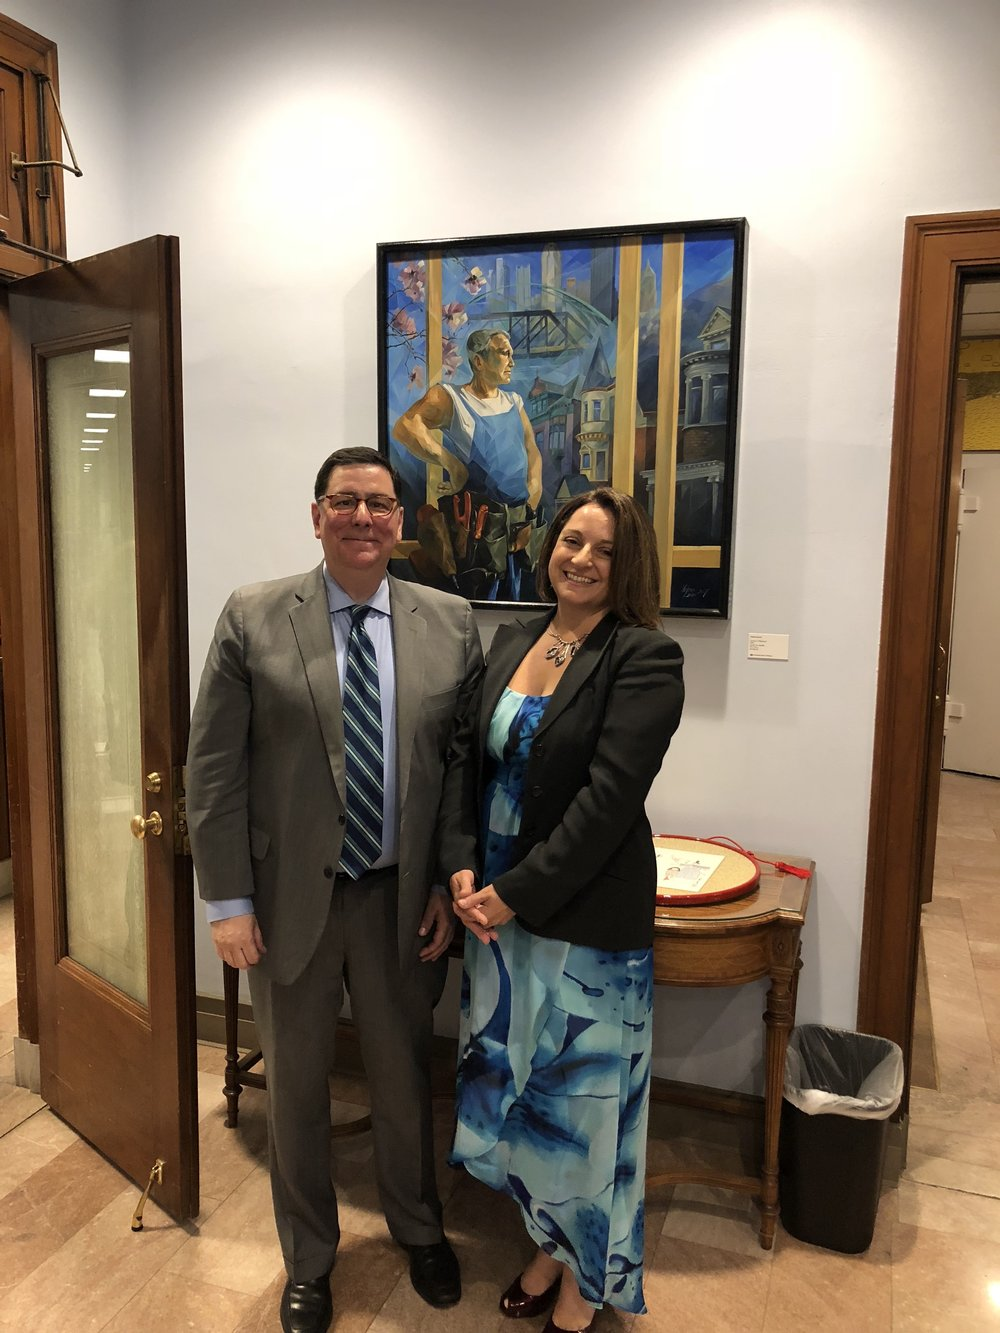 In the Mayor's office with Bill Peduto, Mayor of Pittsburgh